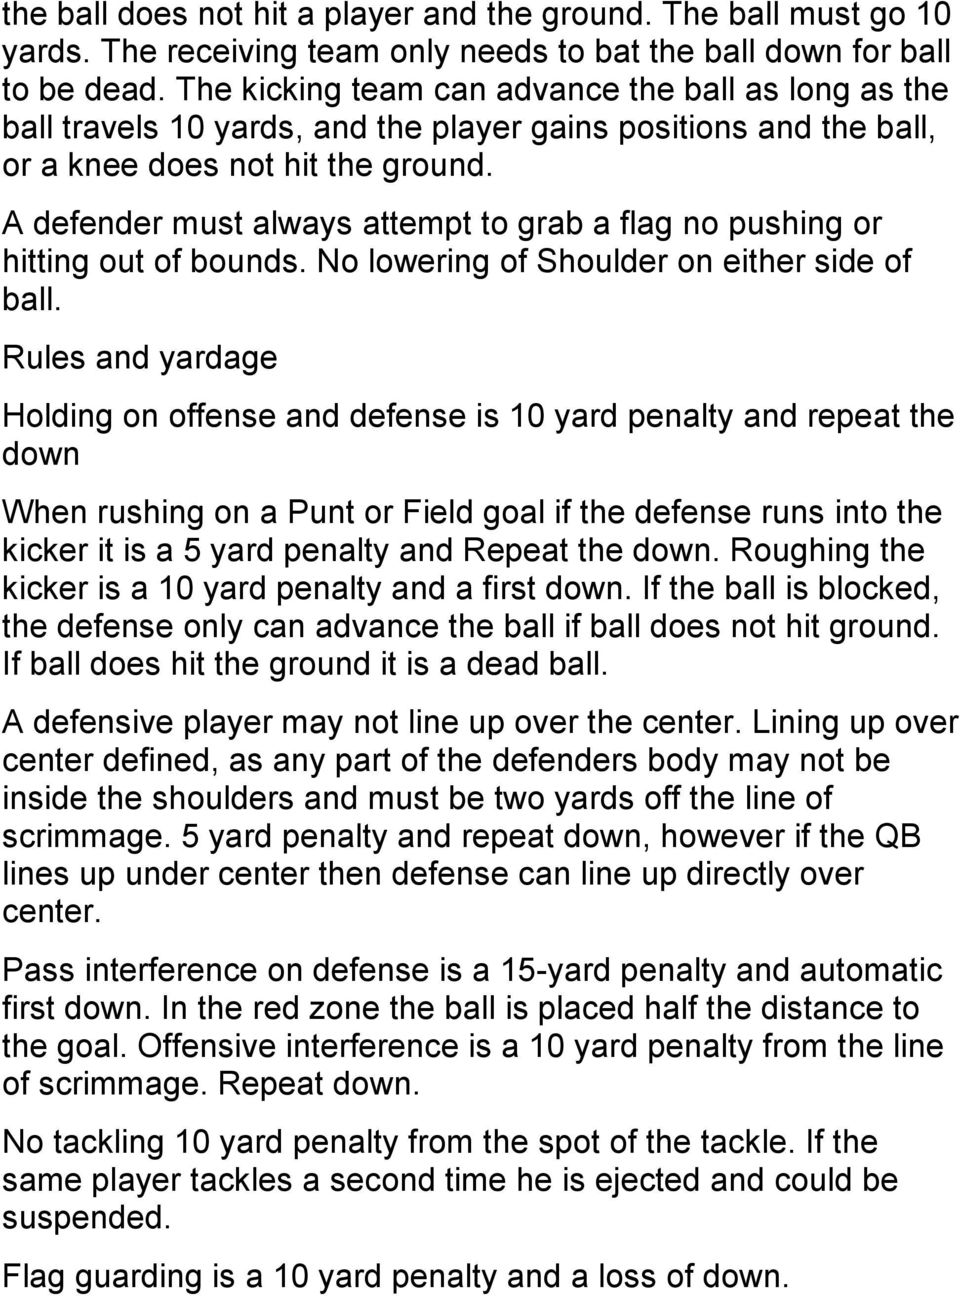 A defender must always attempt to grab a flag no pushing or hitting out of bounds. No lowering of Shoulder on either side of ball.